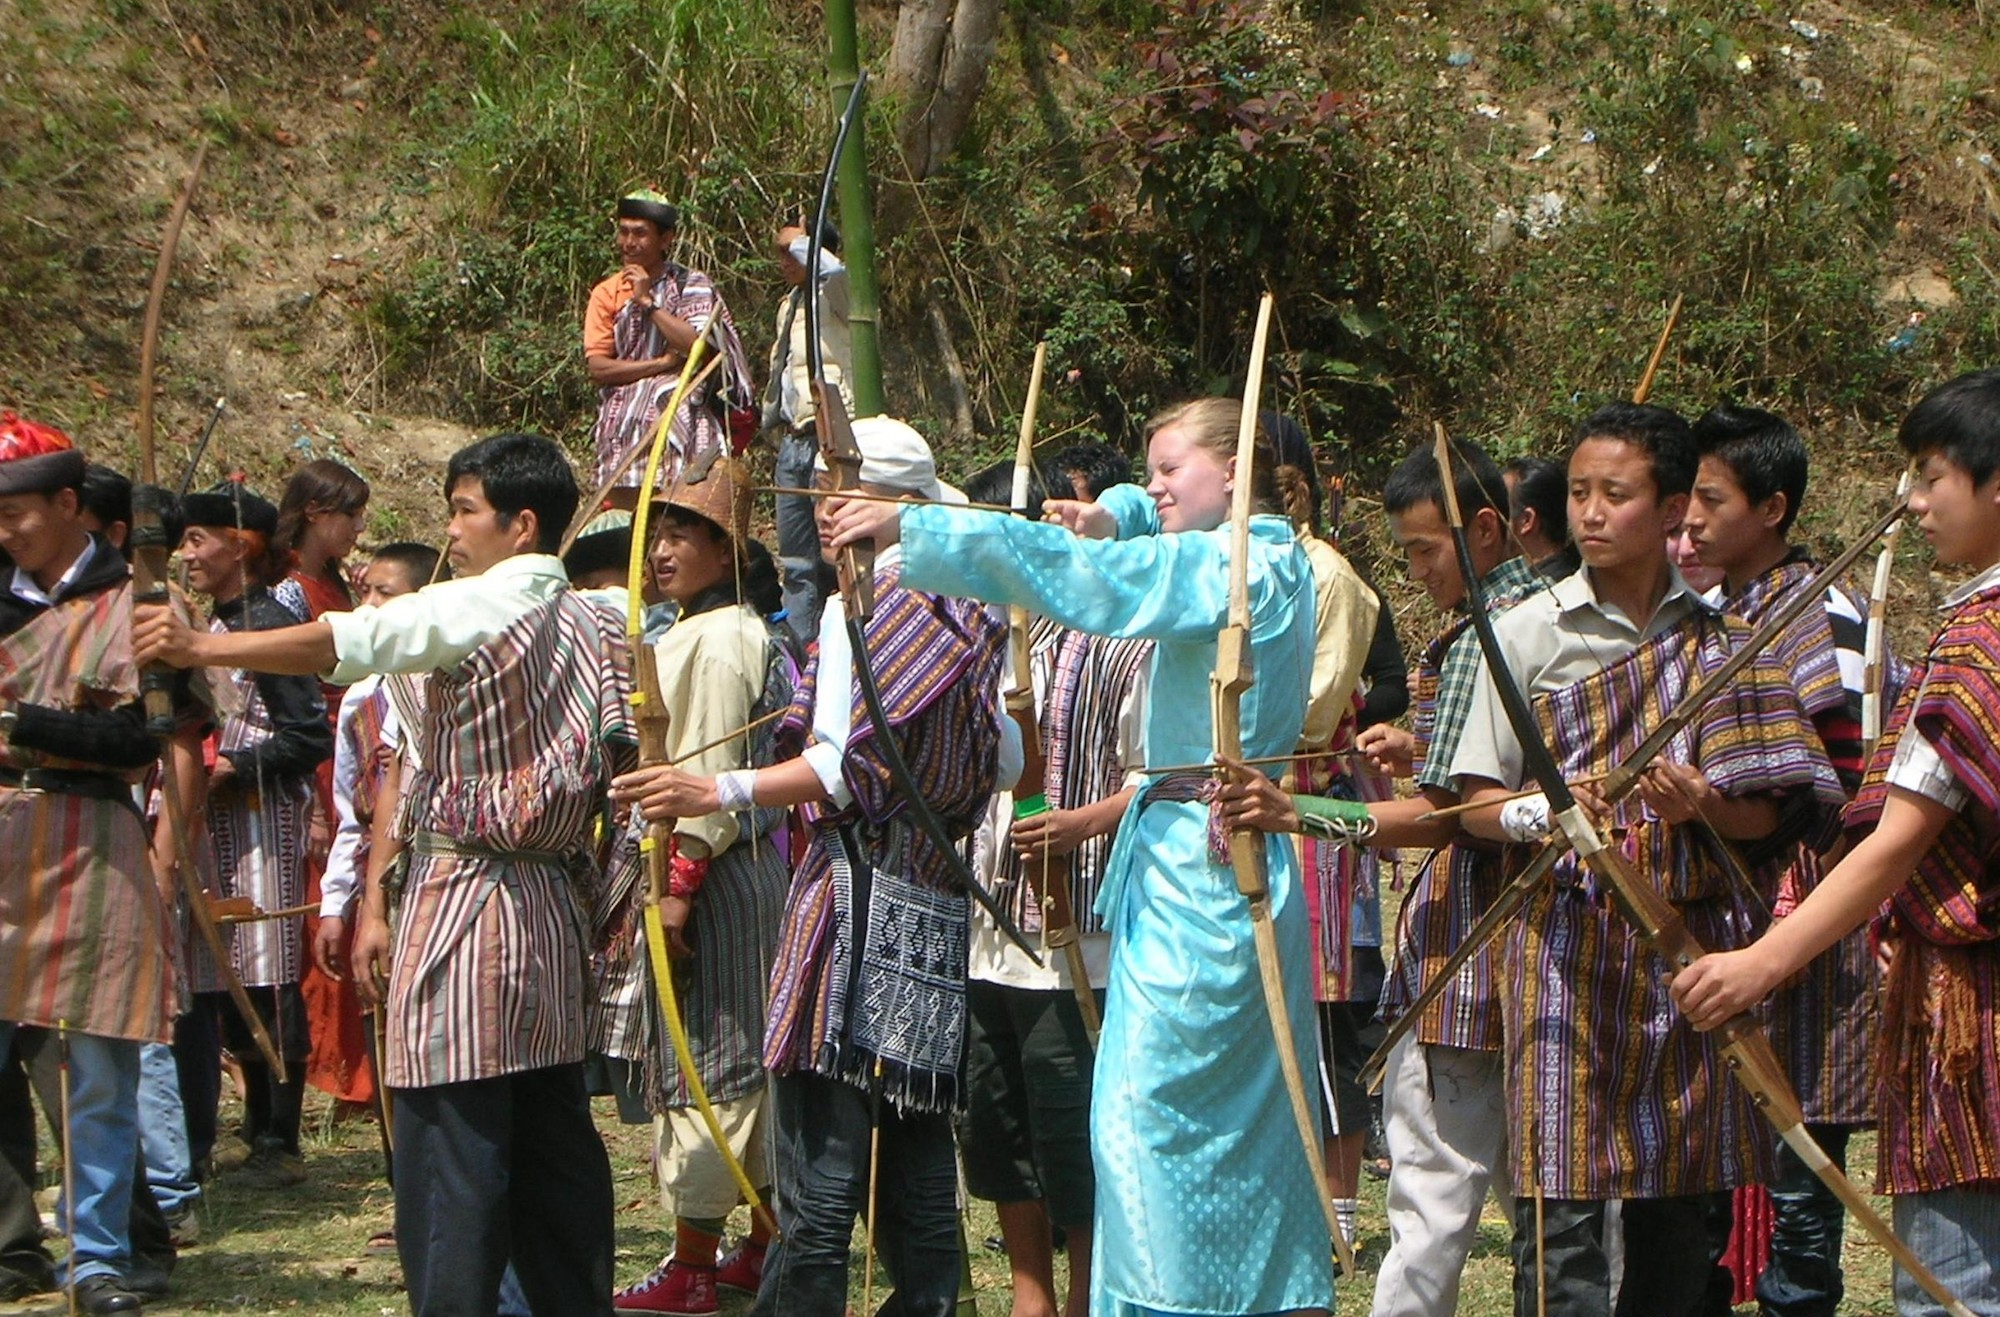 Try archery on your Gap Year in India